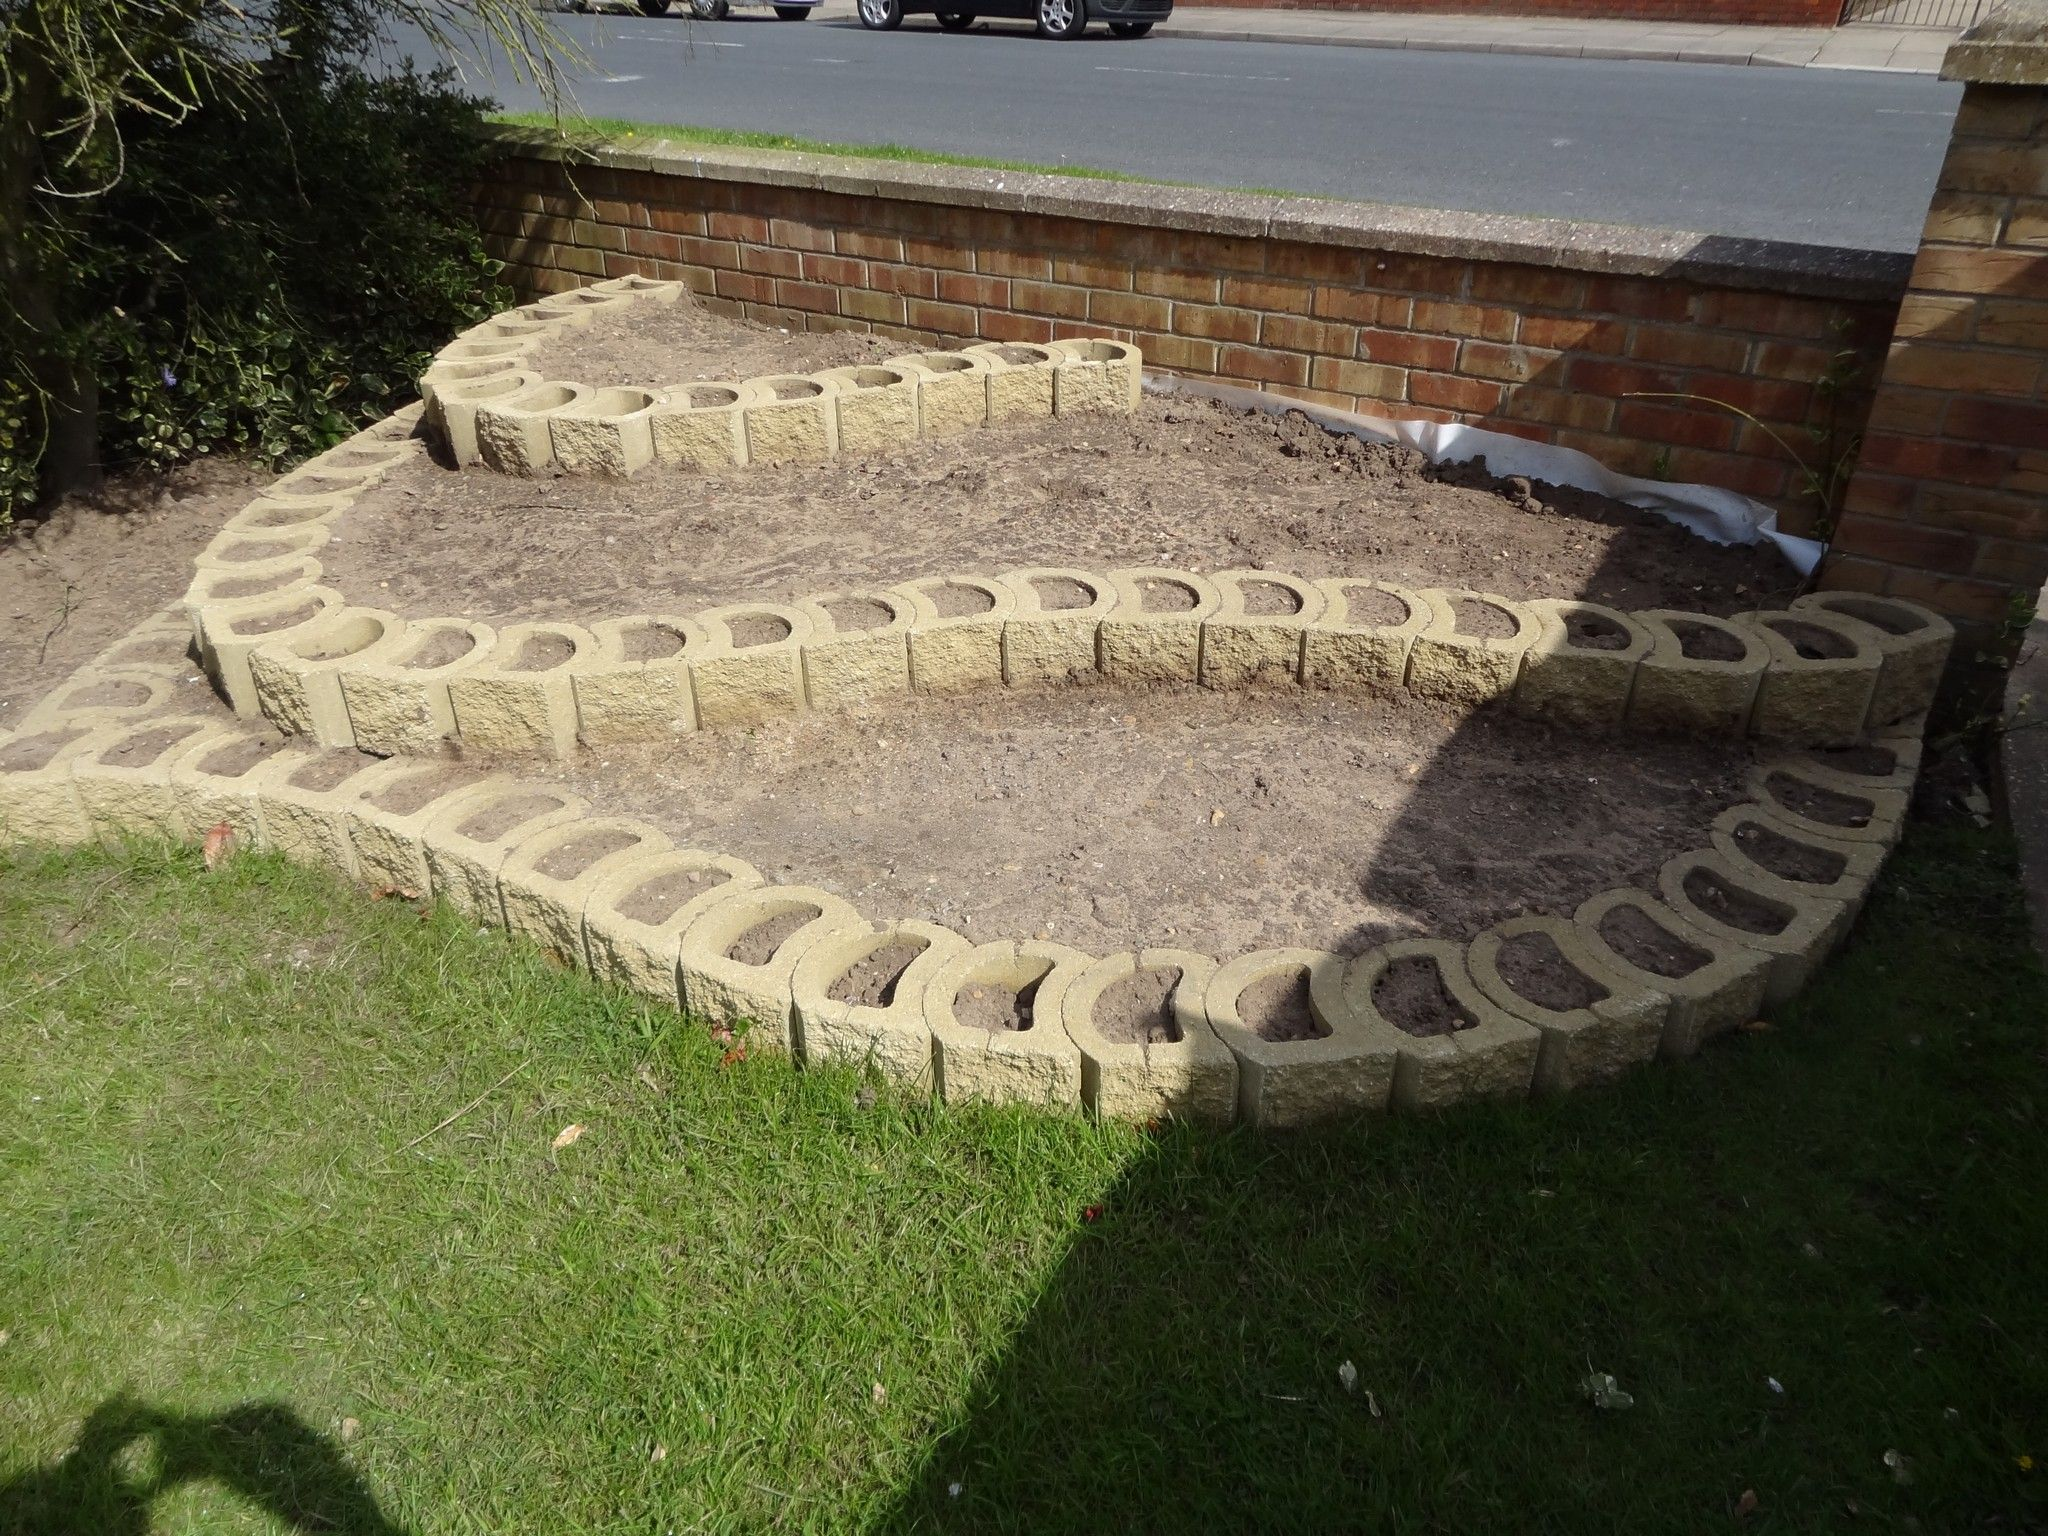 Terraforce Hollow Core Retaining Wall Blocks Being Used To Create A Low Terraced Flower Bed Retaining Wall Blocks Garden Wall Retaining Wall